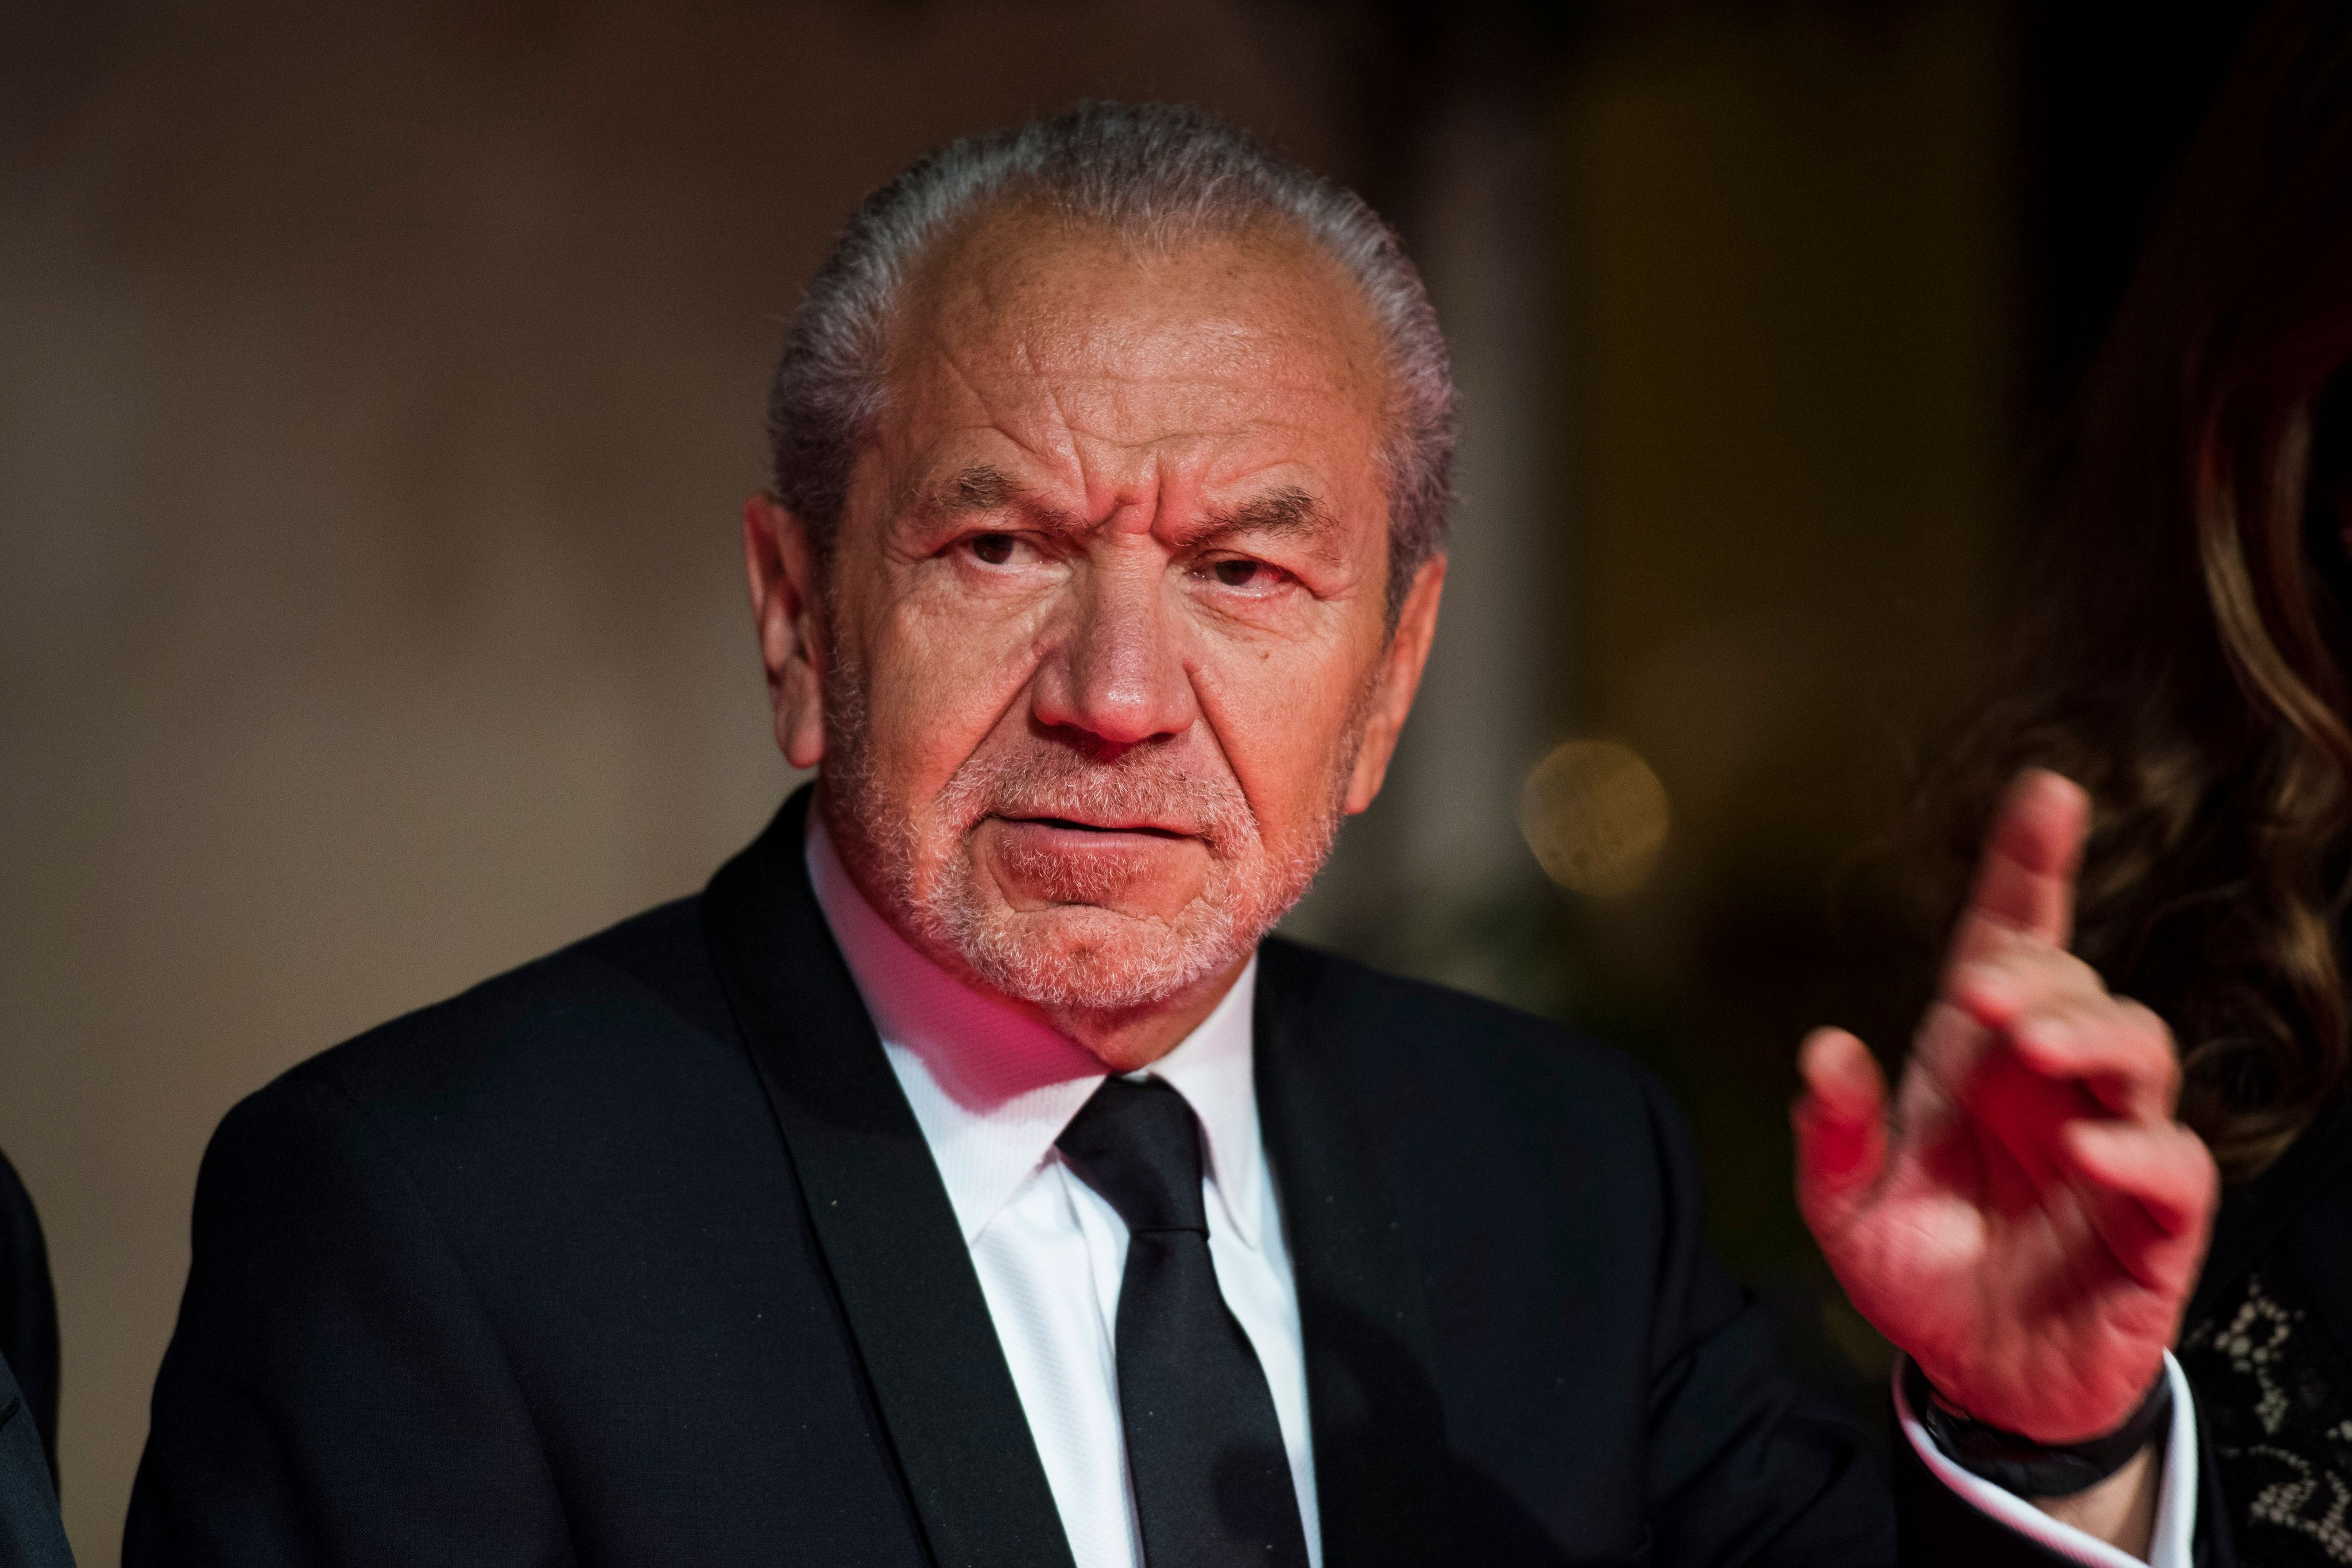 The Apprentice's Alan Sugar Claims He 'Launched Piers Morgan's Television